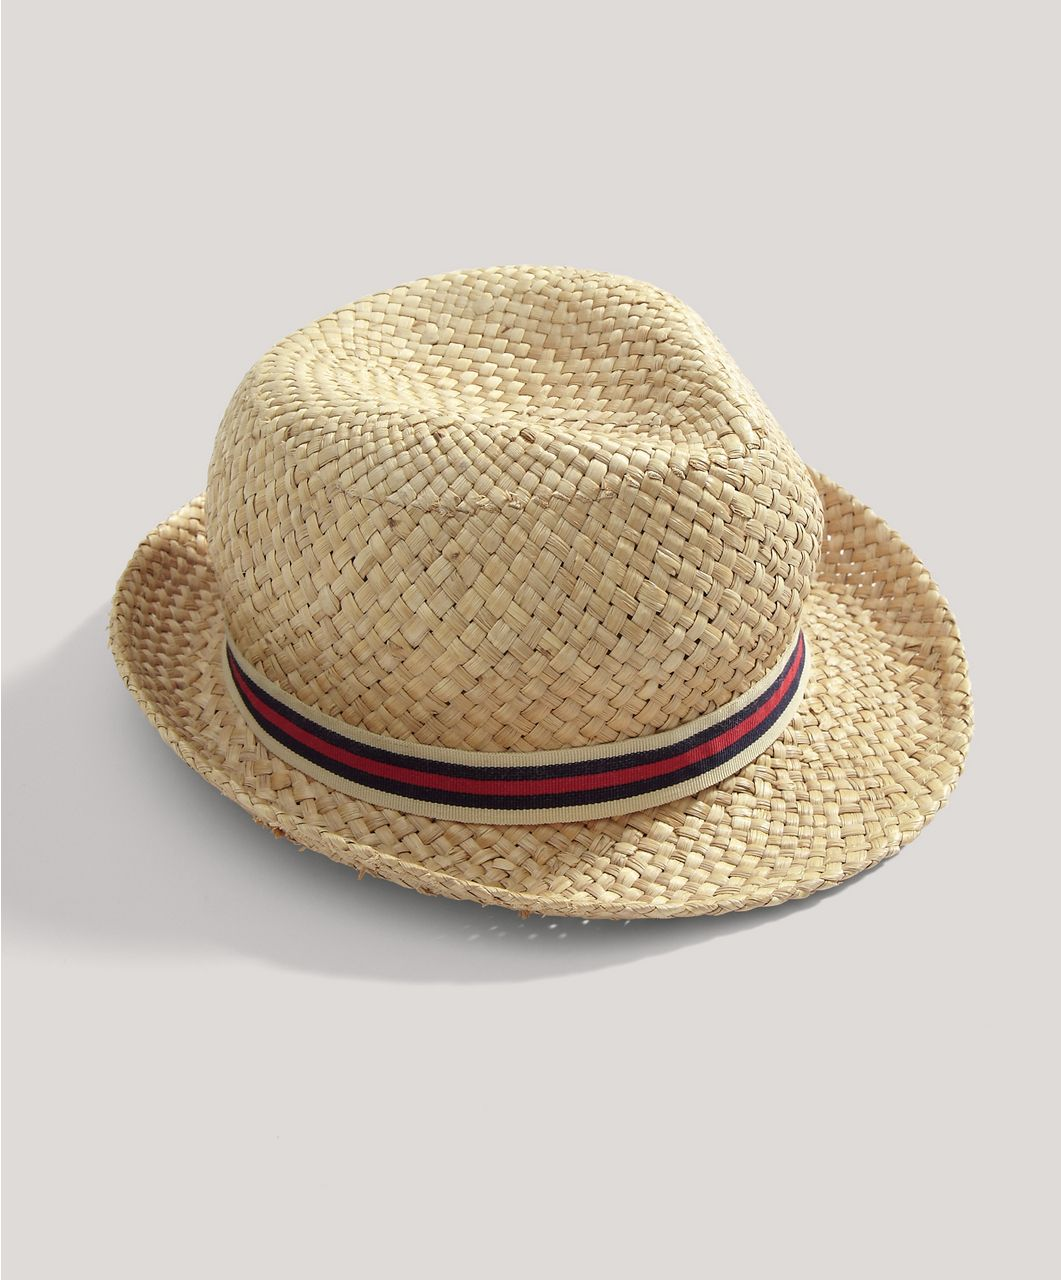 bbbe15c48c568 Boys Straw Trilby Hat - New In - Mamas   Papas